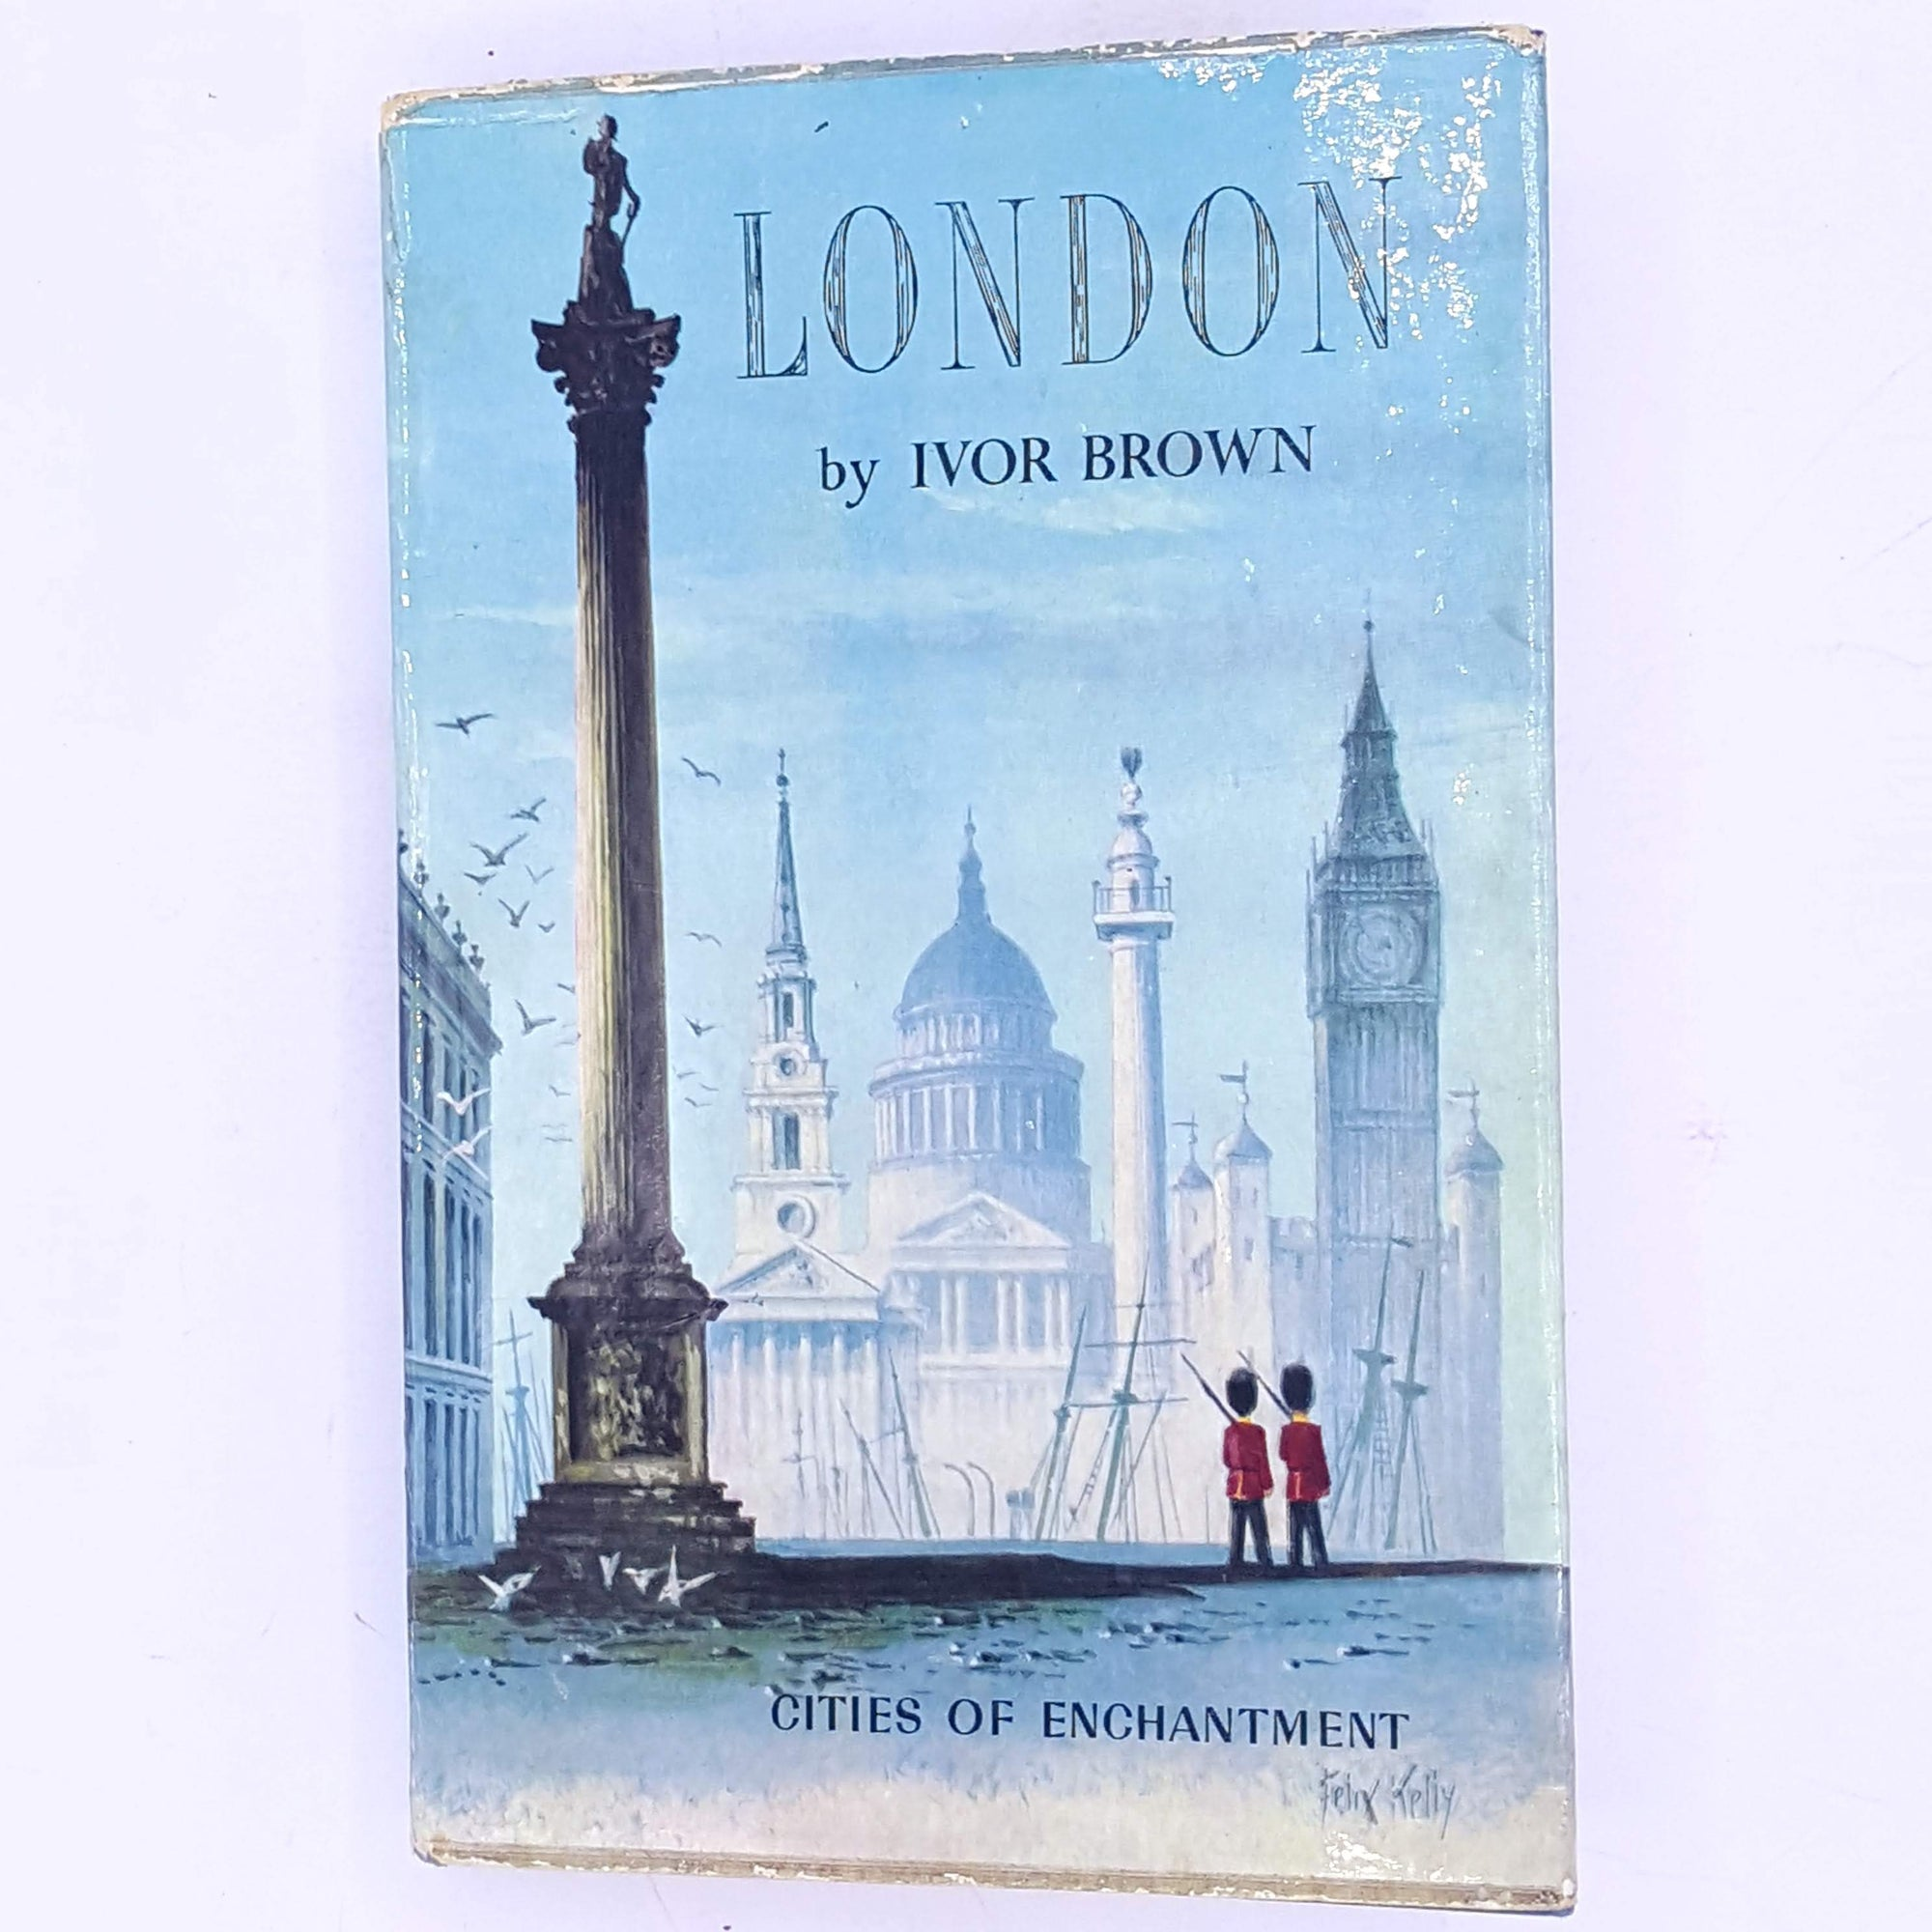 Cities of Enchantment London by Ivor Brown